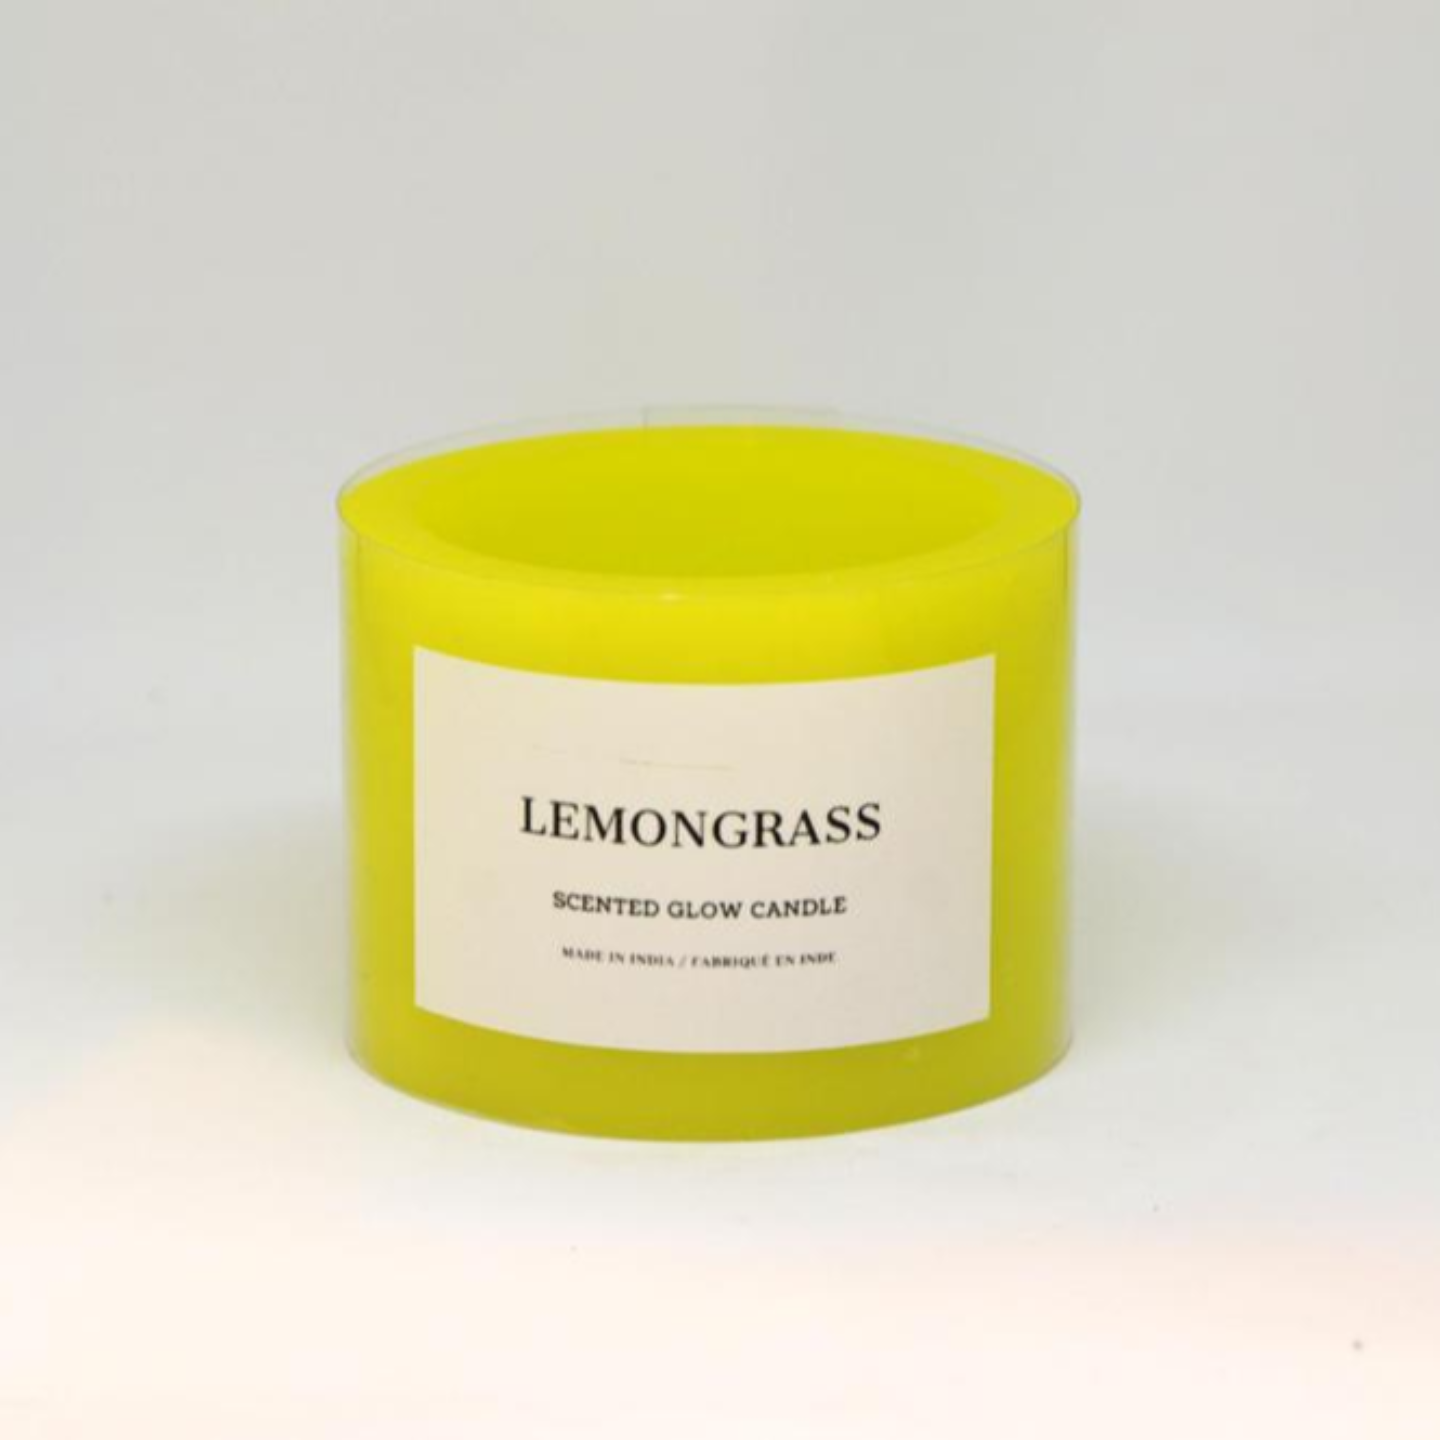 Scented Glow Candle - Lemon Grass